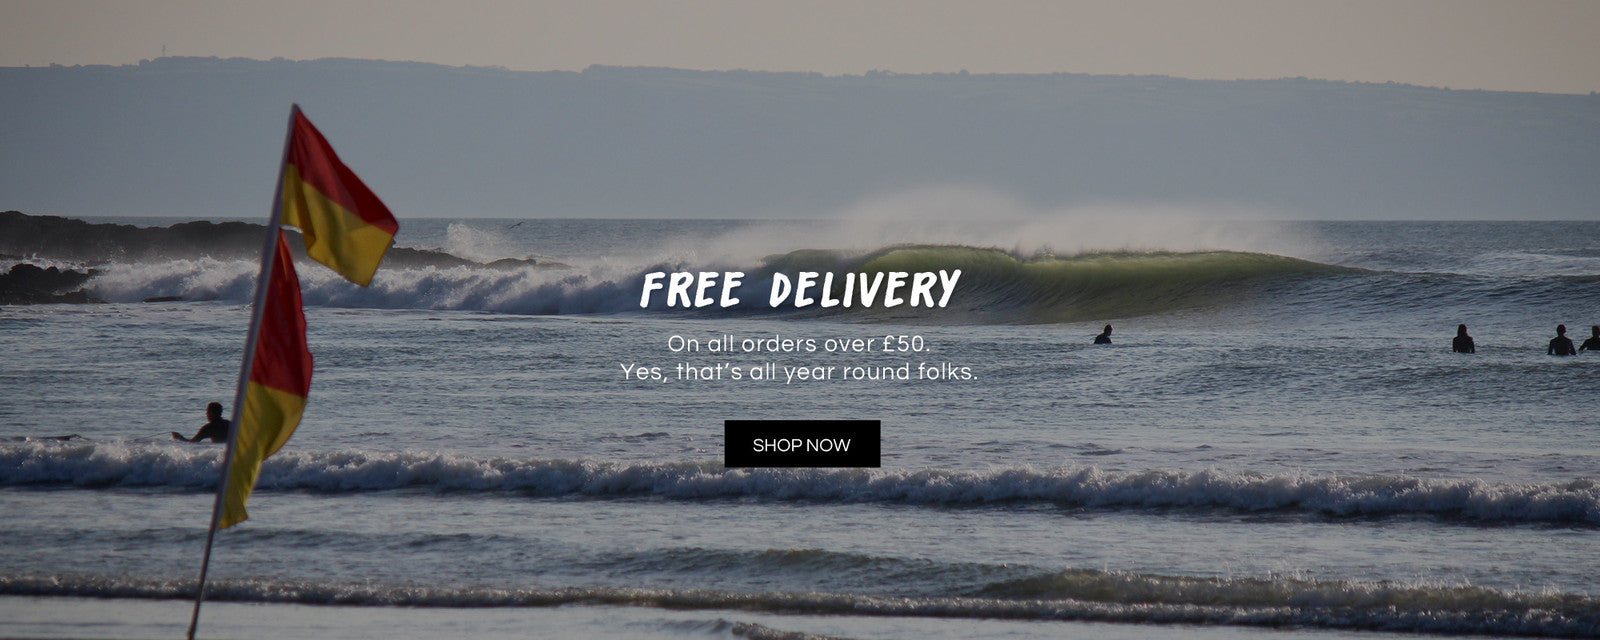 FREE delivery on The Green Wave eco surf shop